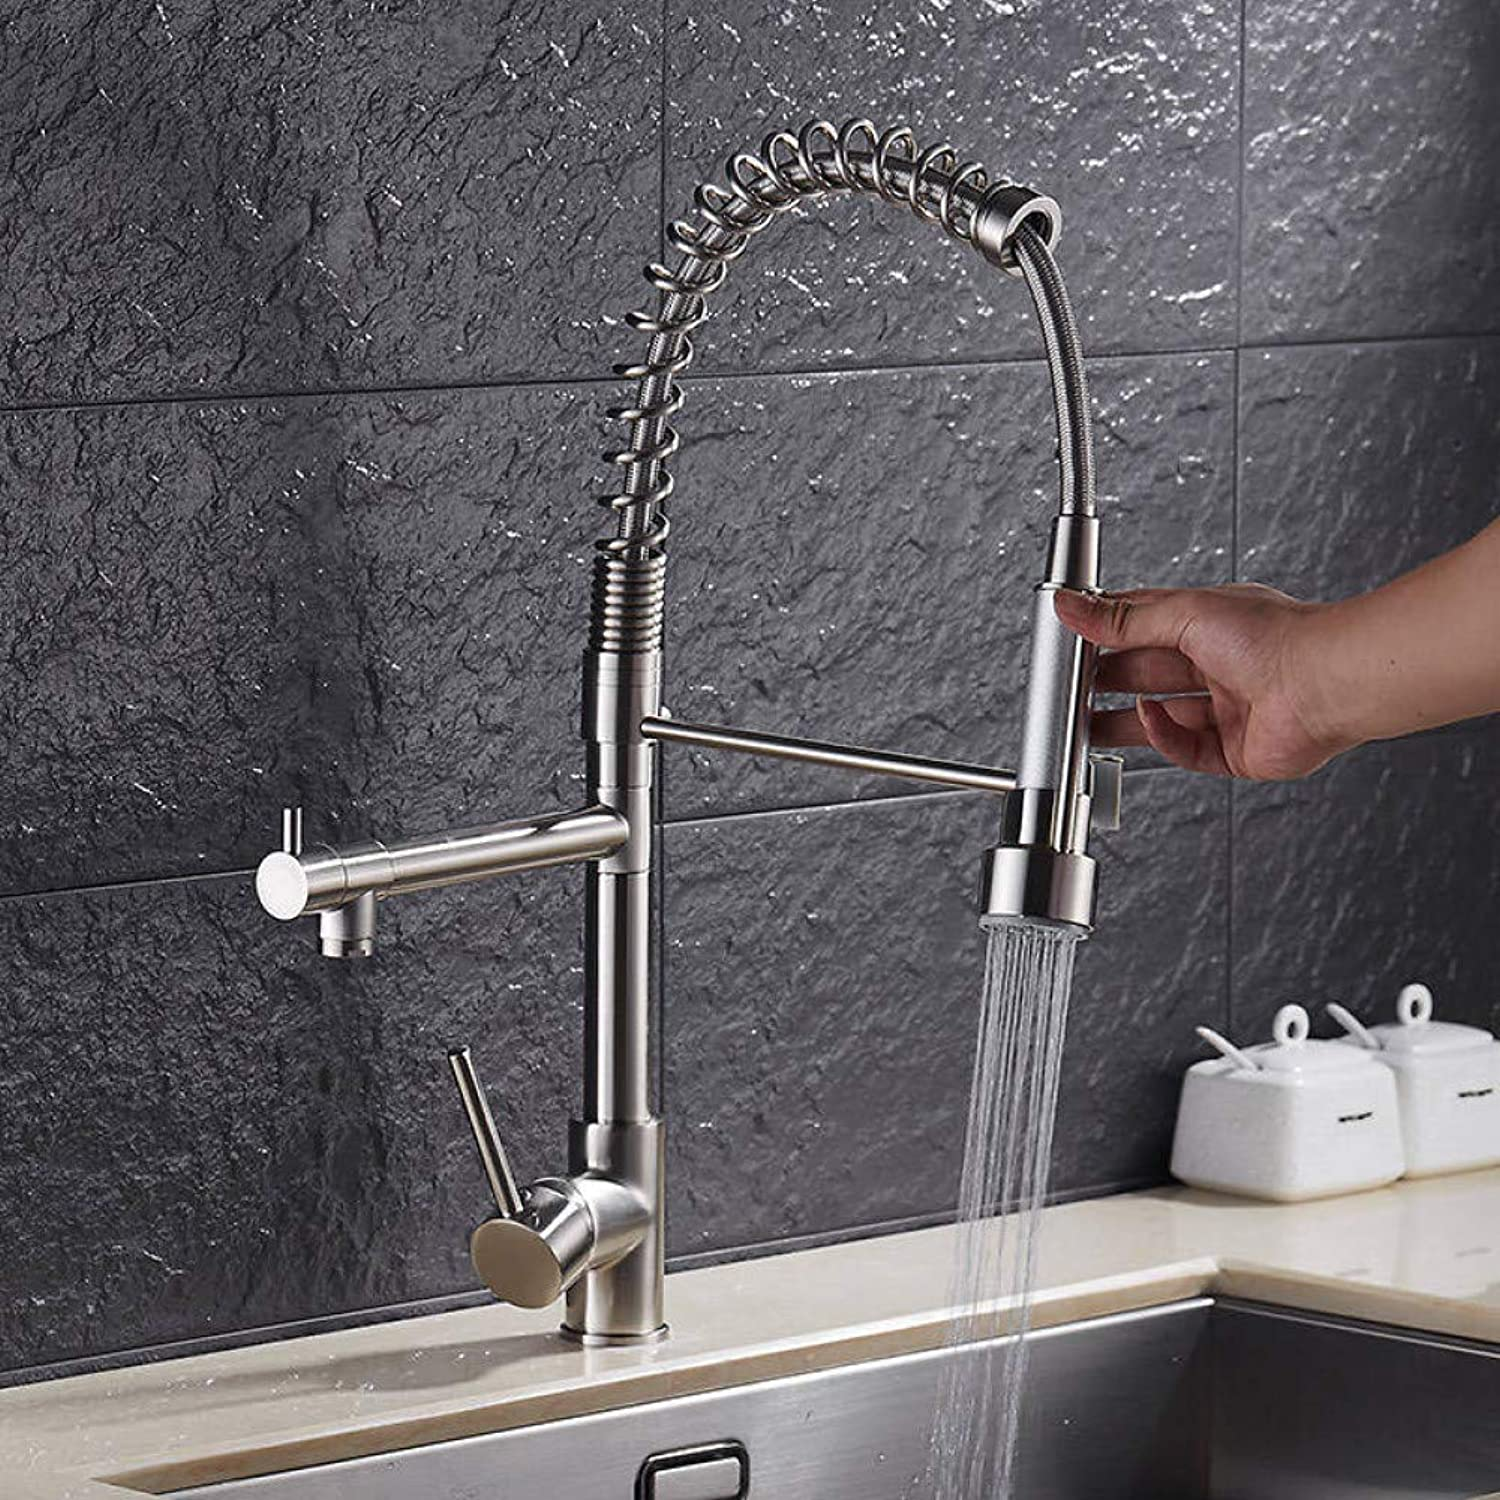 YHSGY Kitchen Taps Luxury gold color New Kitchen Faucet Tap Two Swivel Spouts Extensible Spring Mixer Tap gold Pull Out Down Kitchen Sink Faucet